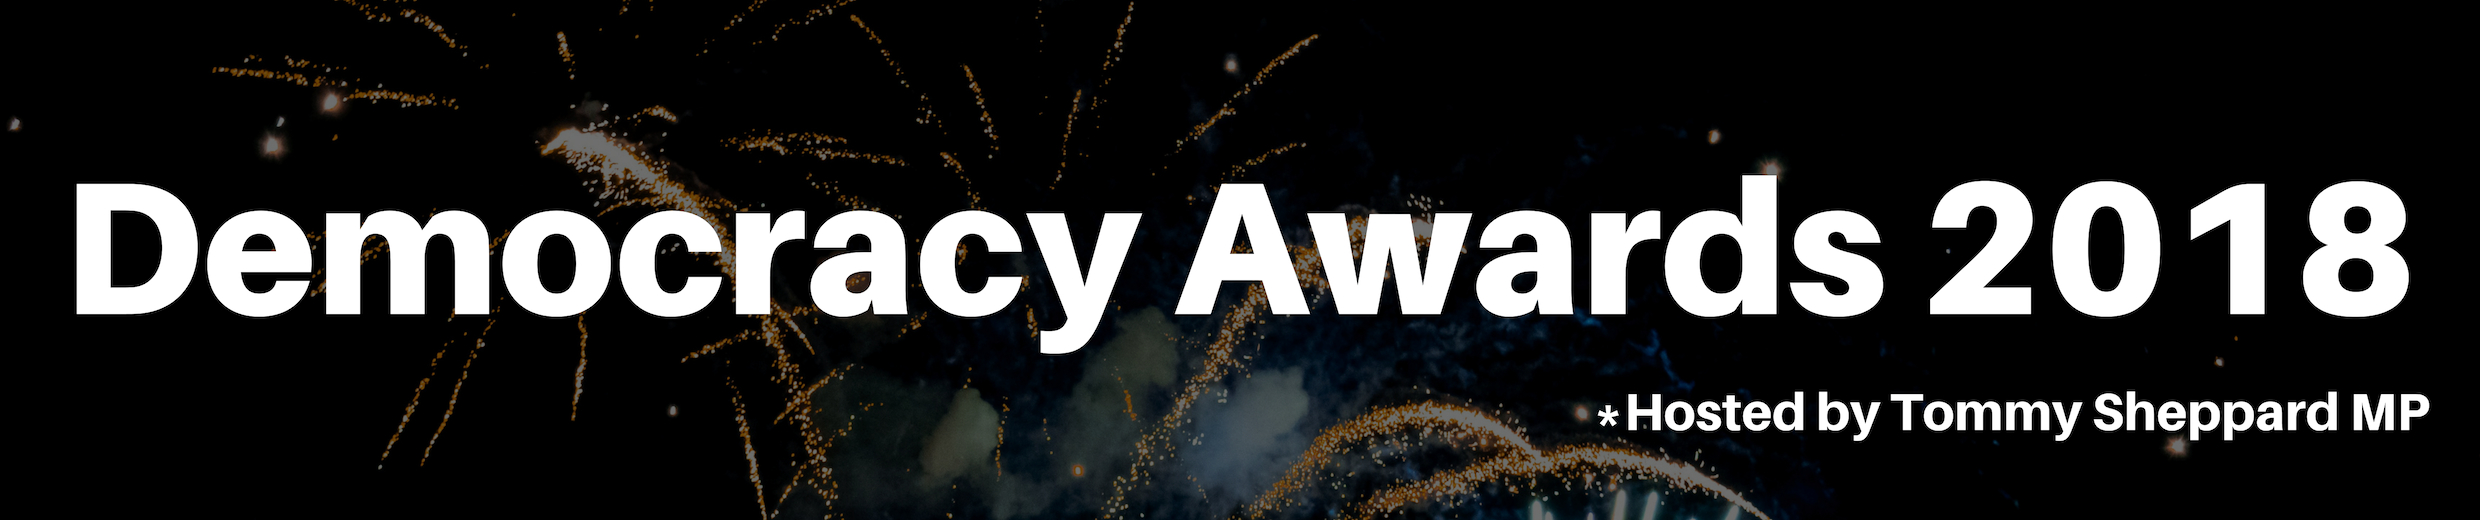 Democracy Awards Event Banner.jpg